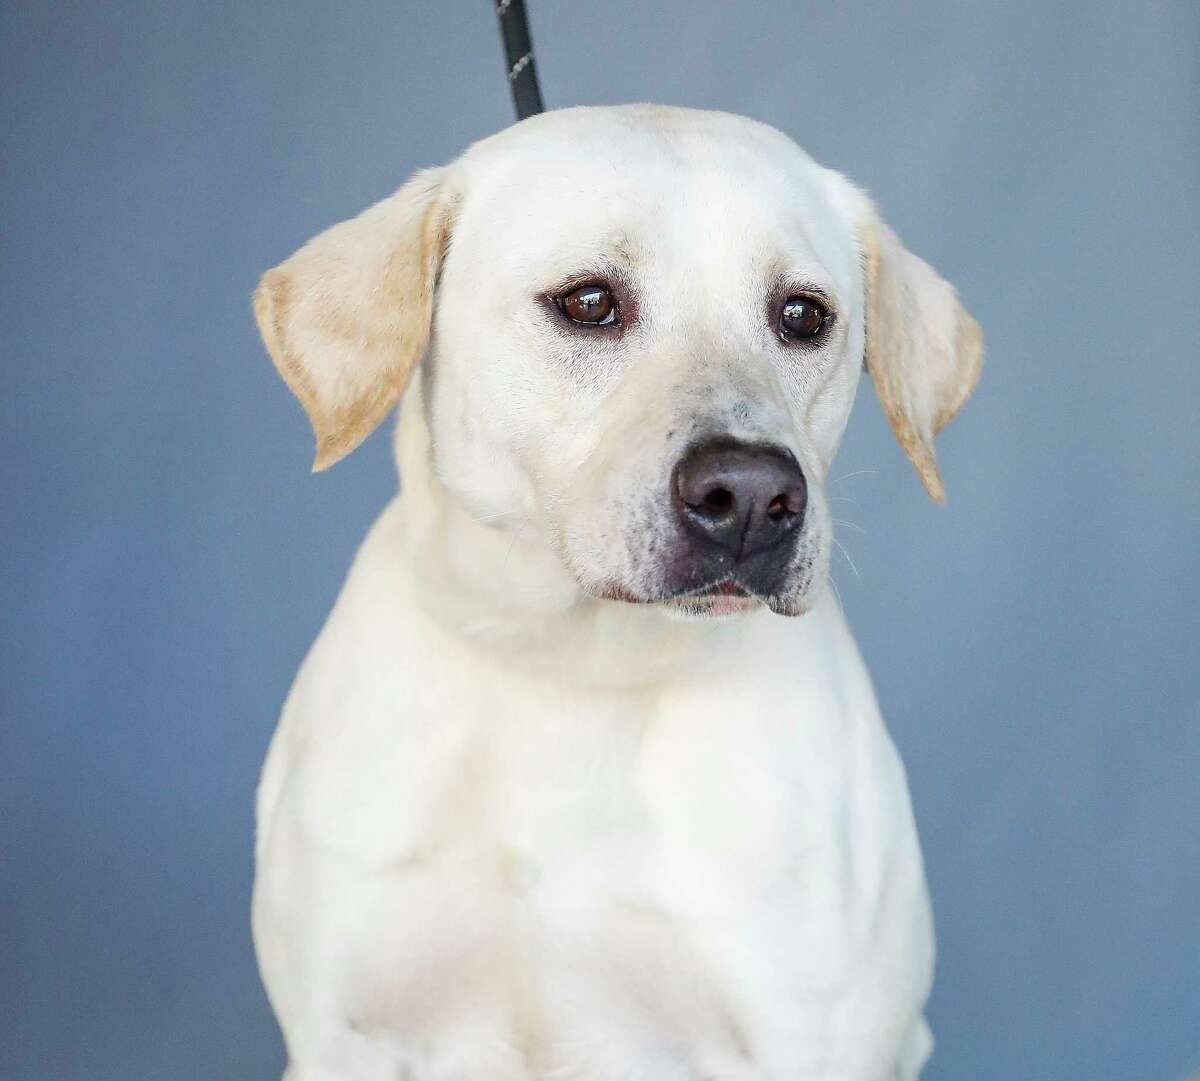 Almighty (ID: 45635374 ) is a 2-year-old, male, yellow Labrador Retriever mix who is available for adoption from the Houston Humane Society. Almighty is heartworm positive, but his treatment would be free because it is sponsored. Staff writes,